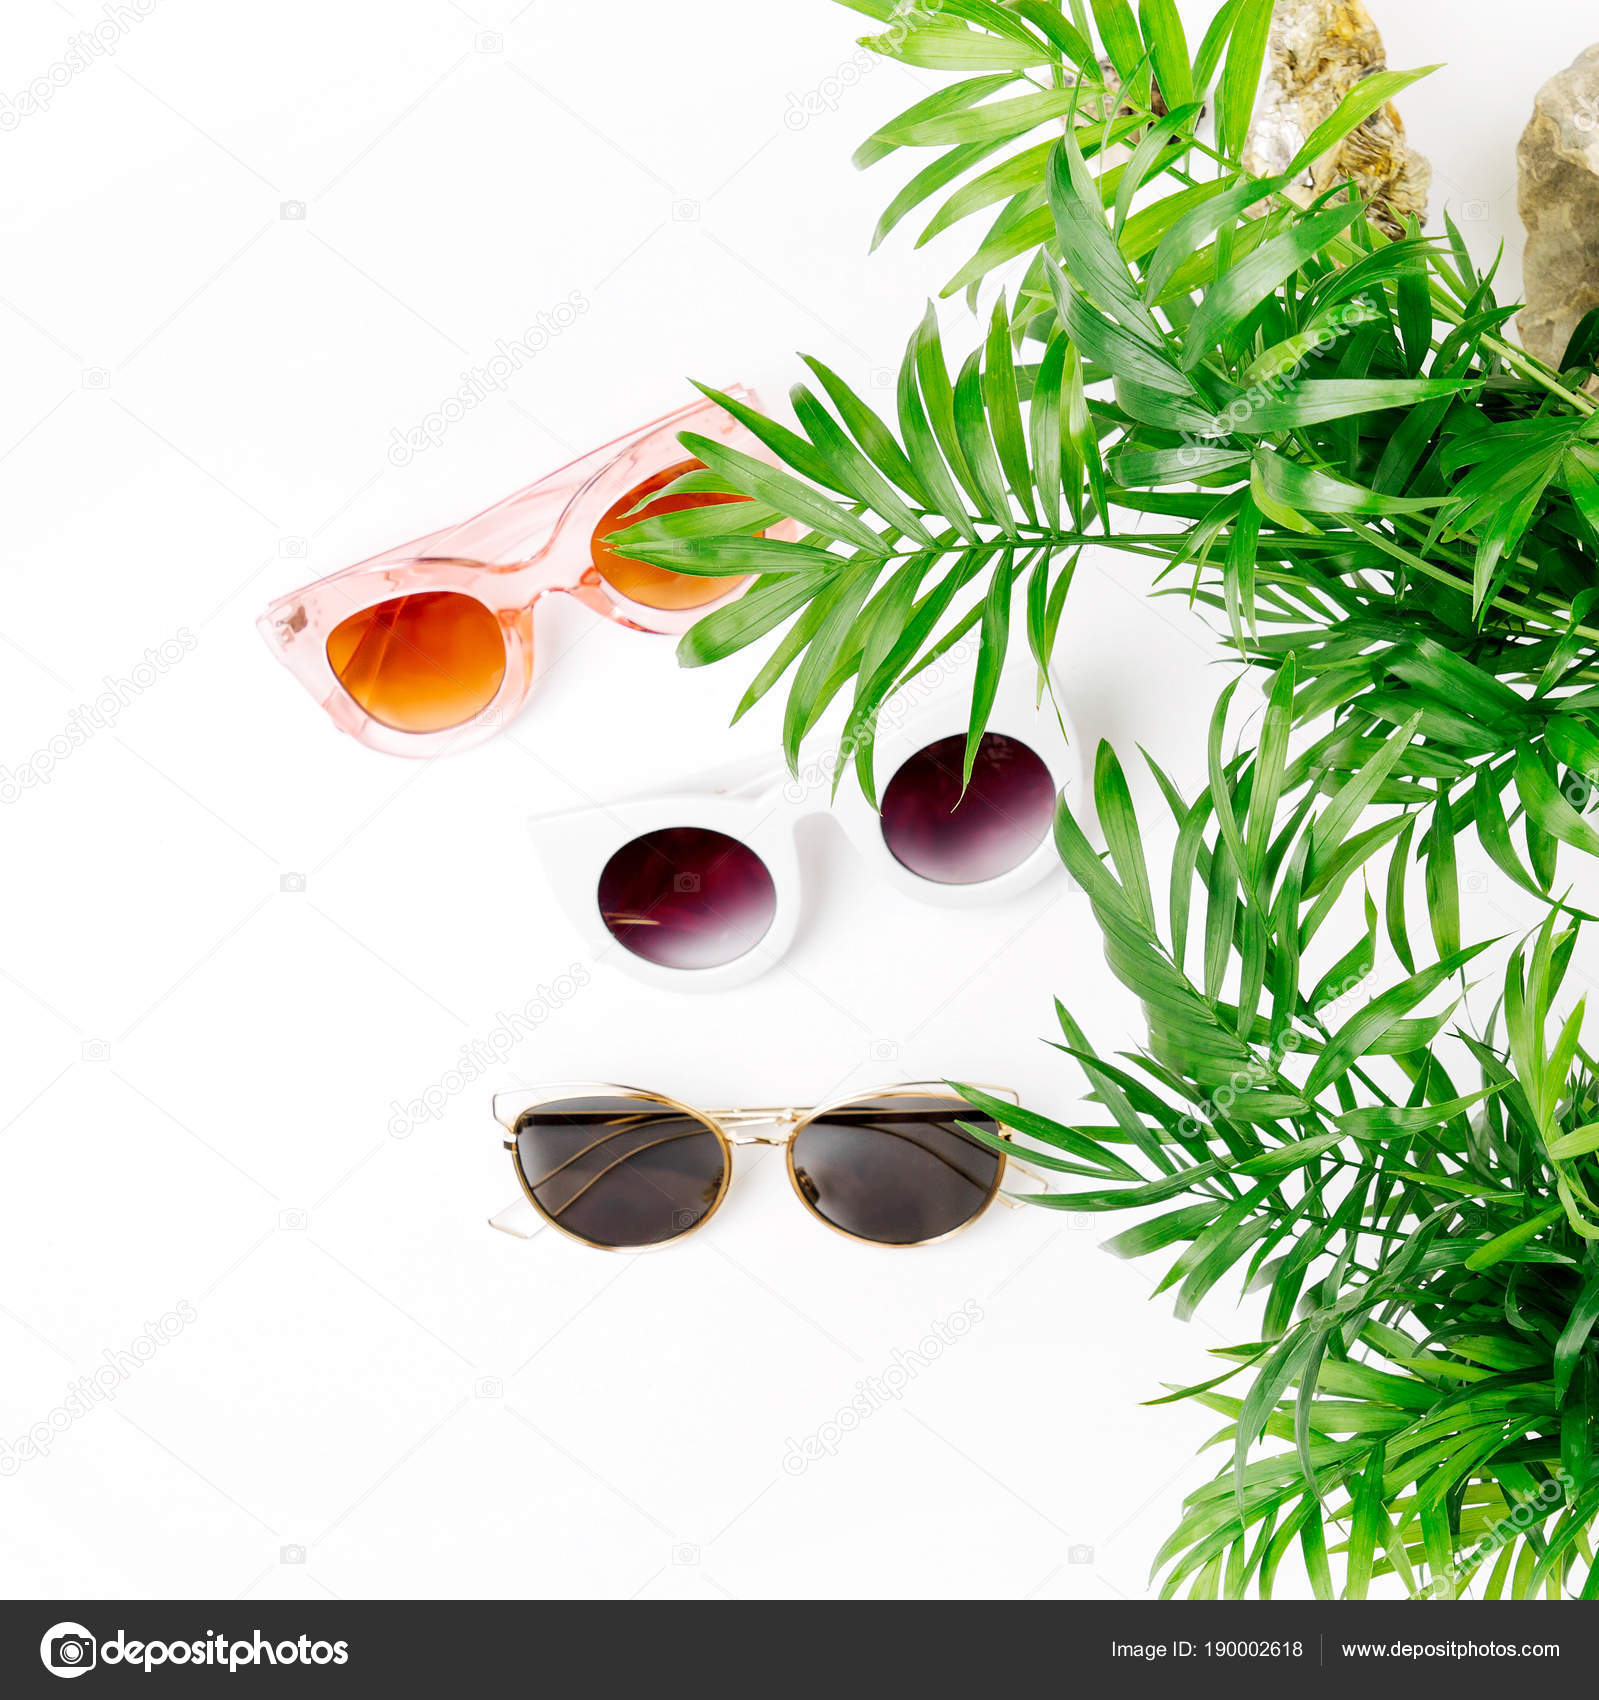 Types Of Tropical Leaves Tropical Leaves Different Types Sunglasses Isolated White Background Stock Photo C Igishevamaria 190002618 There are a multitude of types of tropical plants that blend nicely with palms or other trees and will add charm to almost any garden. depositphotos